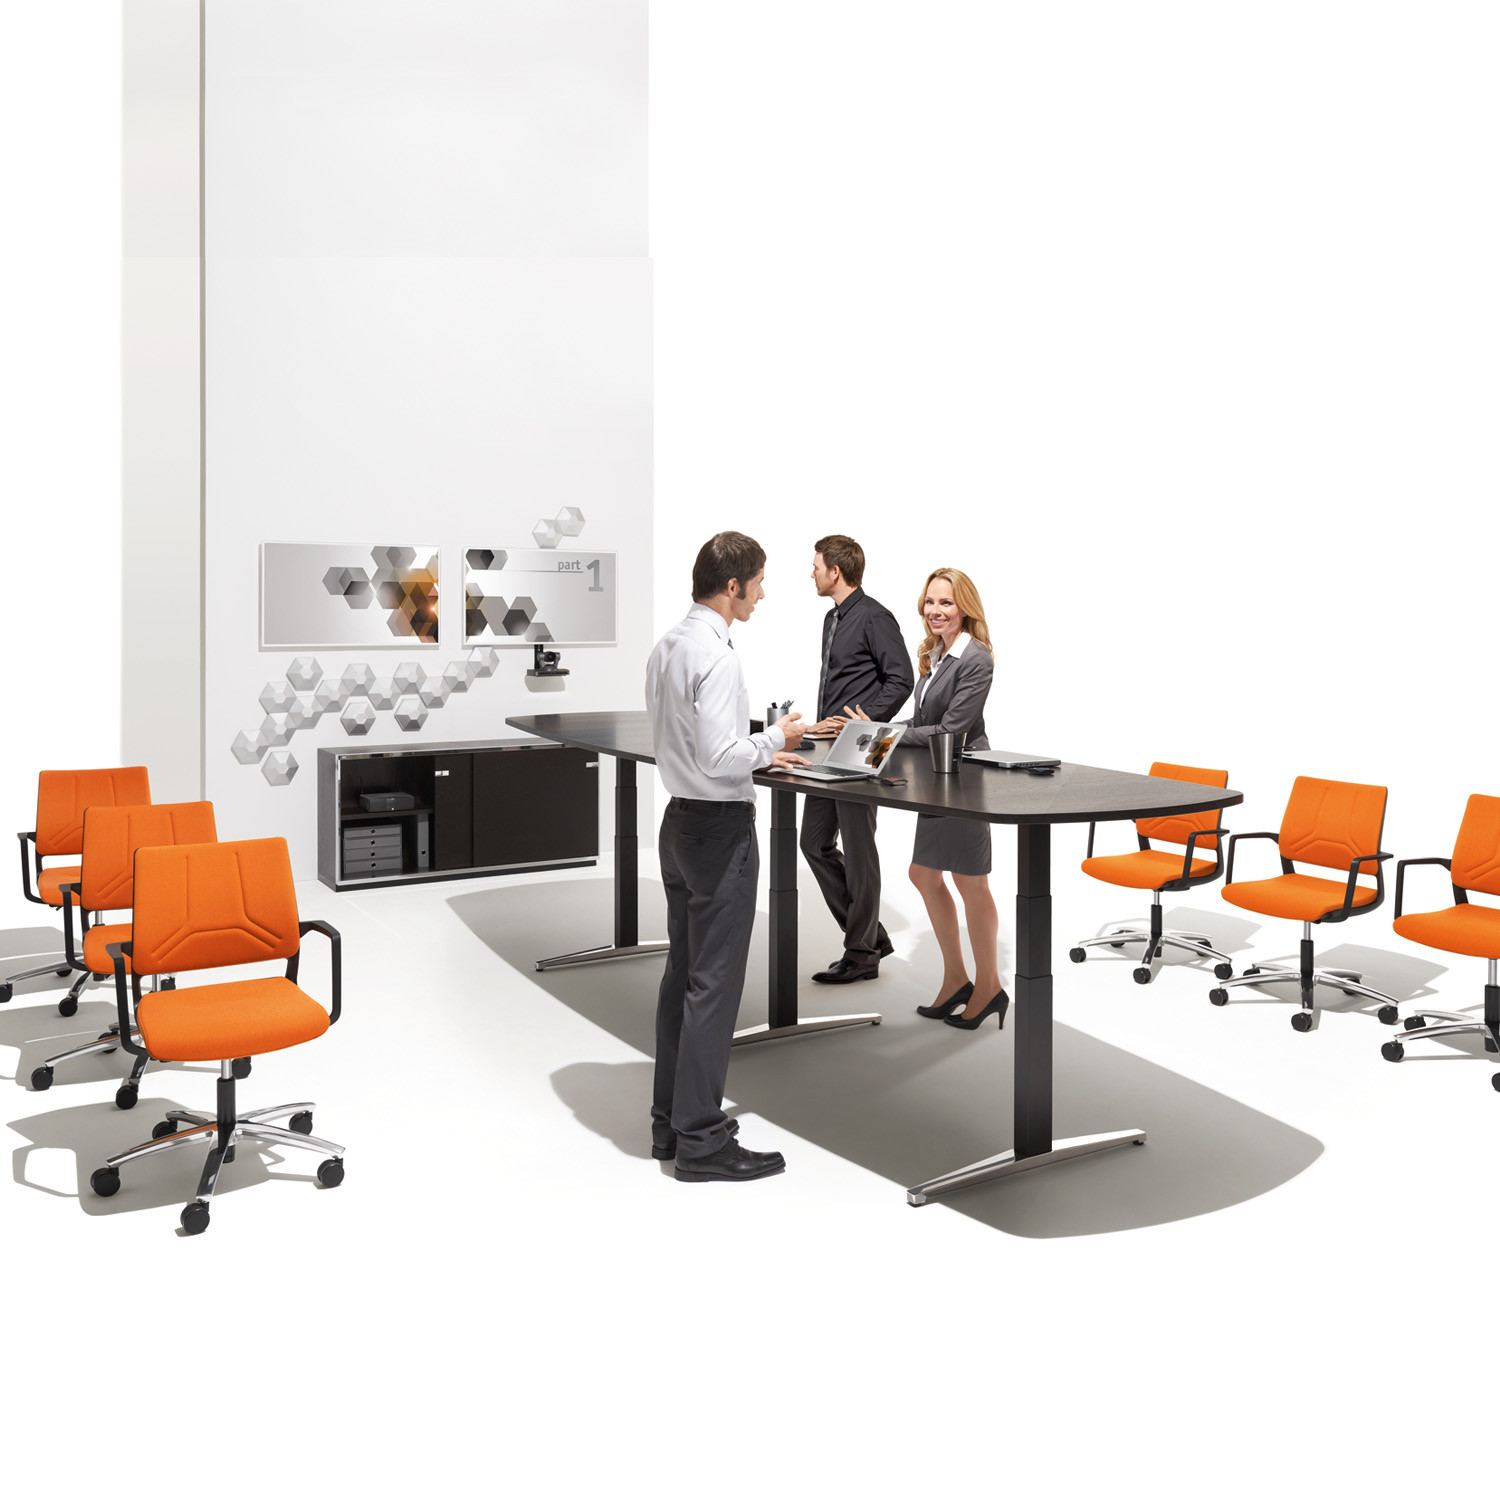 Attention T Conference Table Adjustable Height Tables Apres - Adjustable height conference table